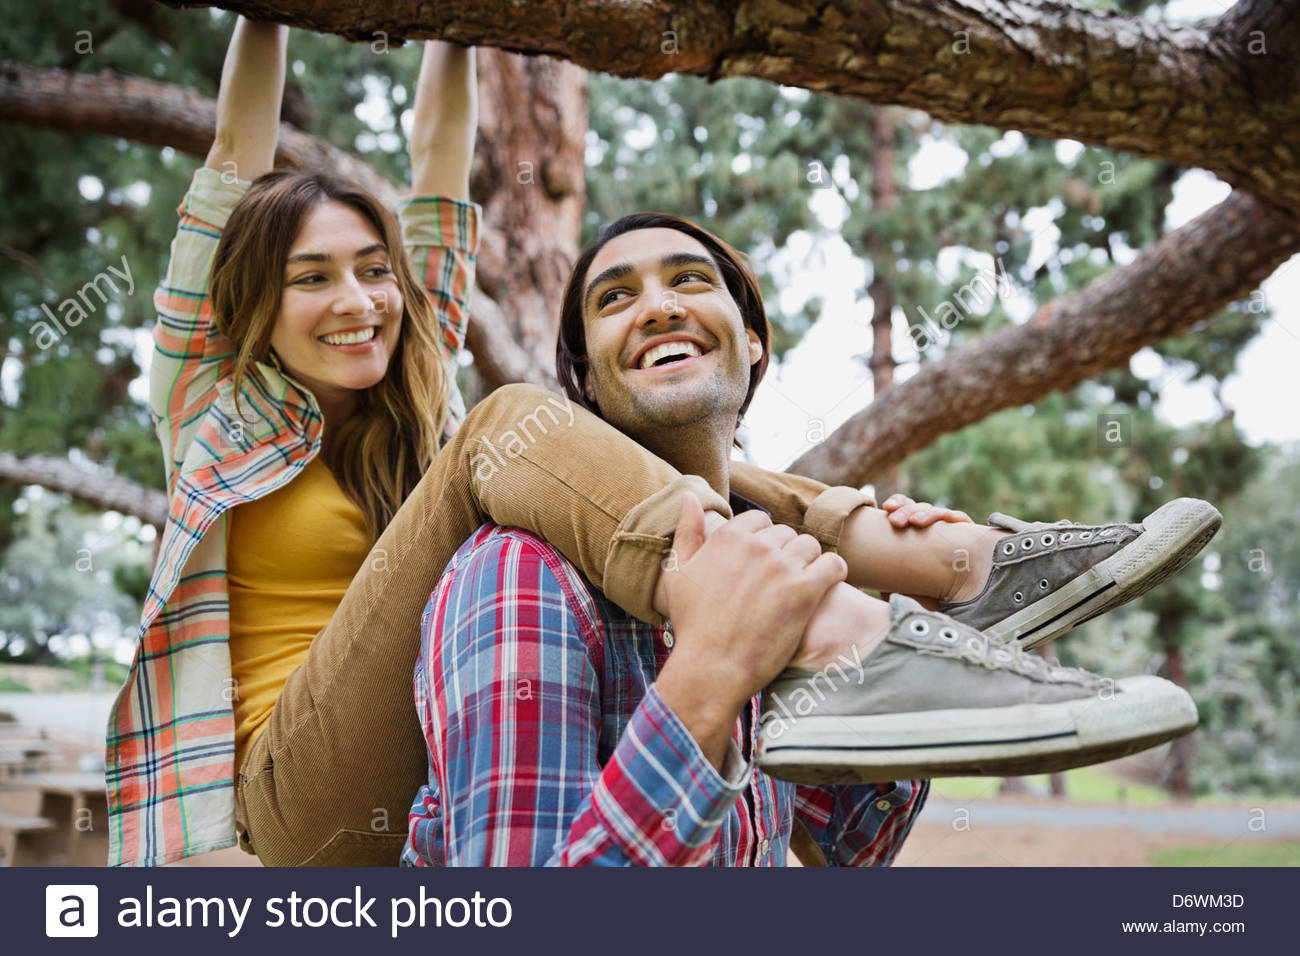 Happy young man supporting woman hanging on tree branch in park - Stock Image